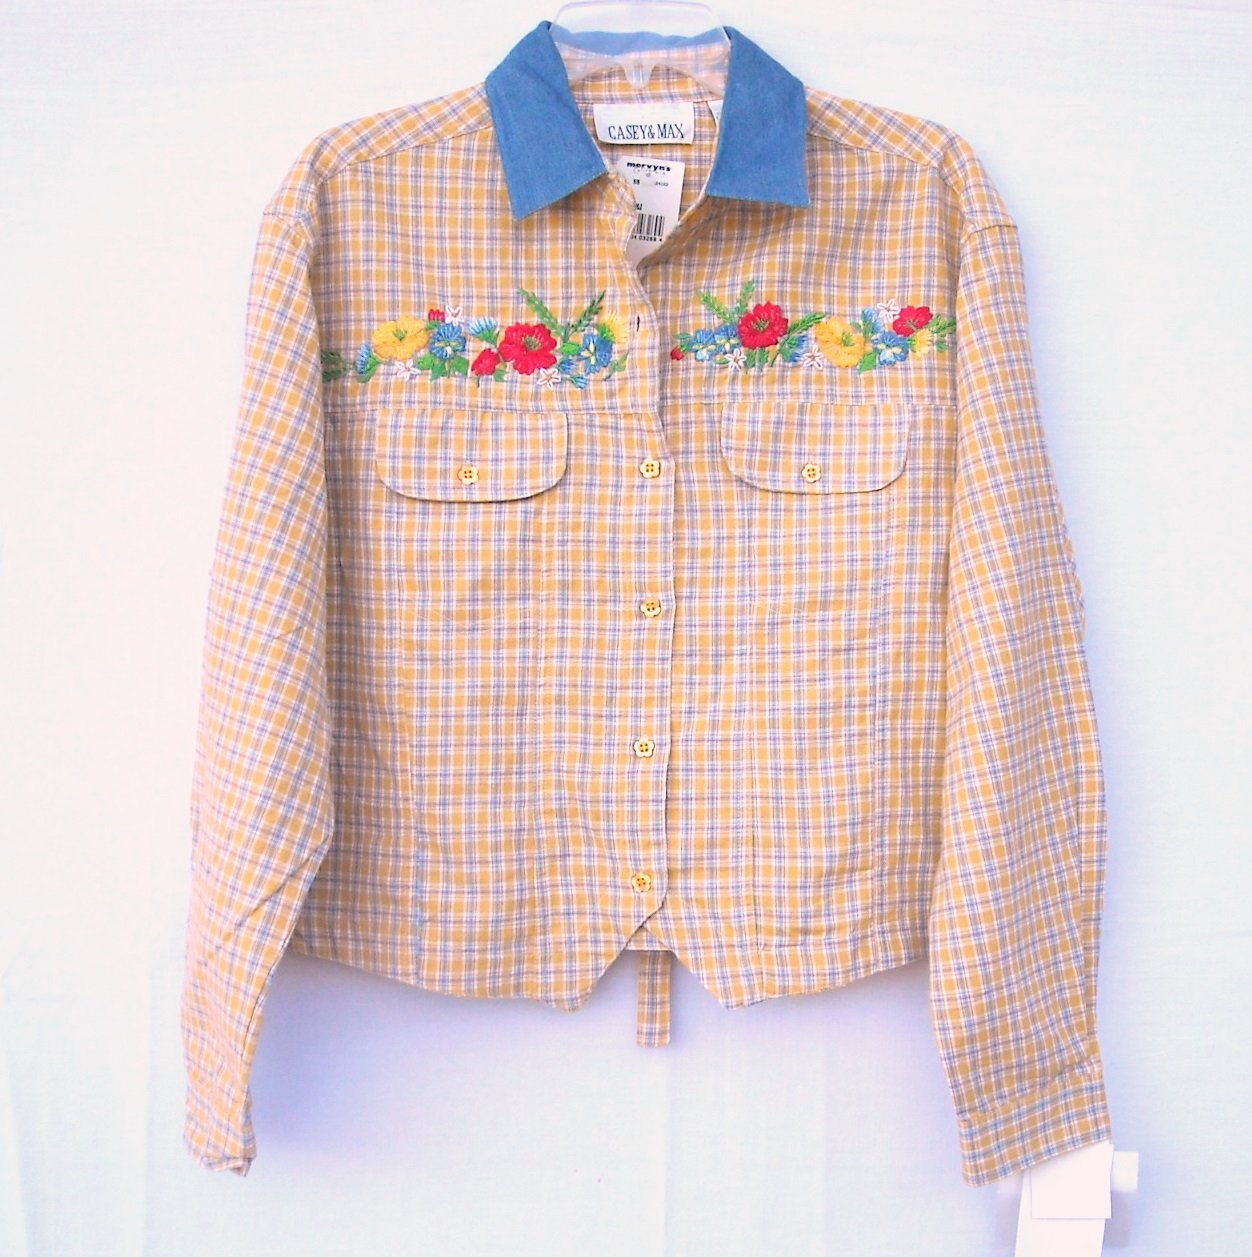 Casey Max Embroidered Shirt Top Size L